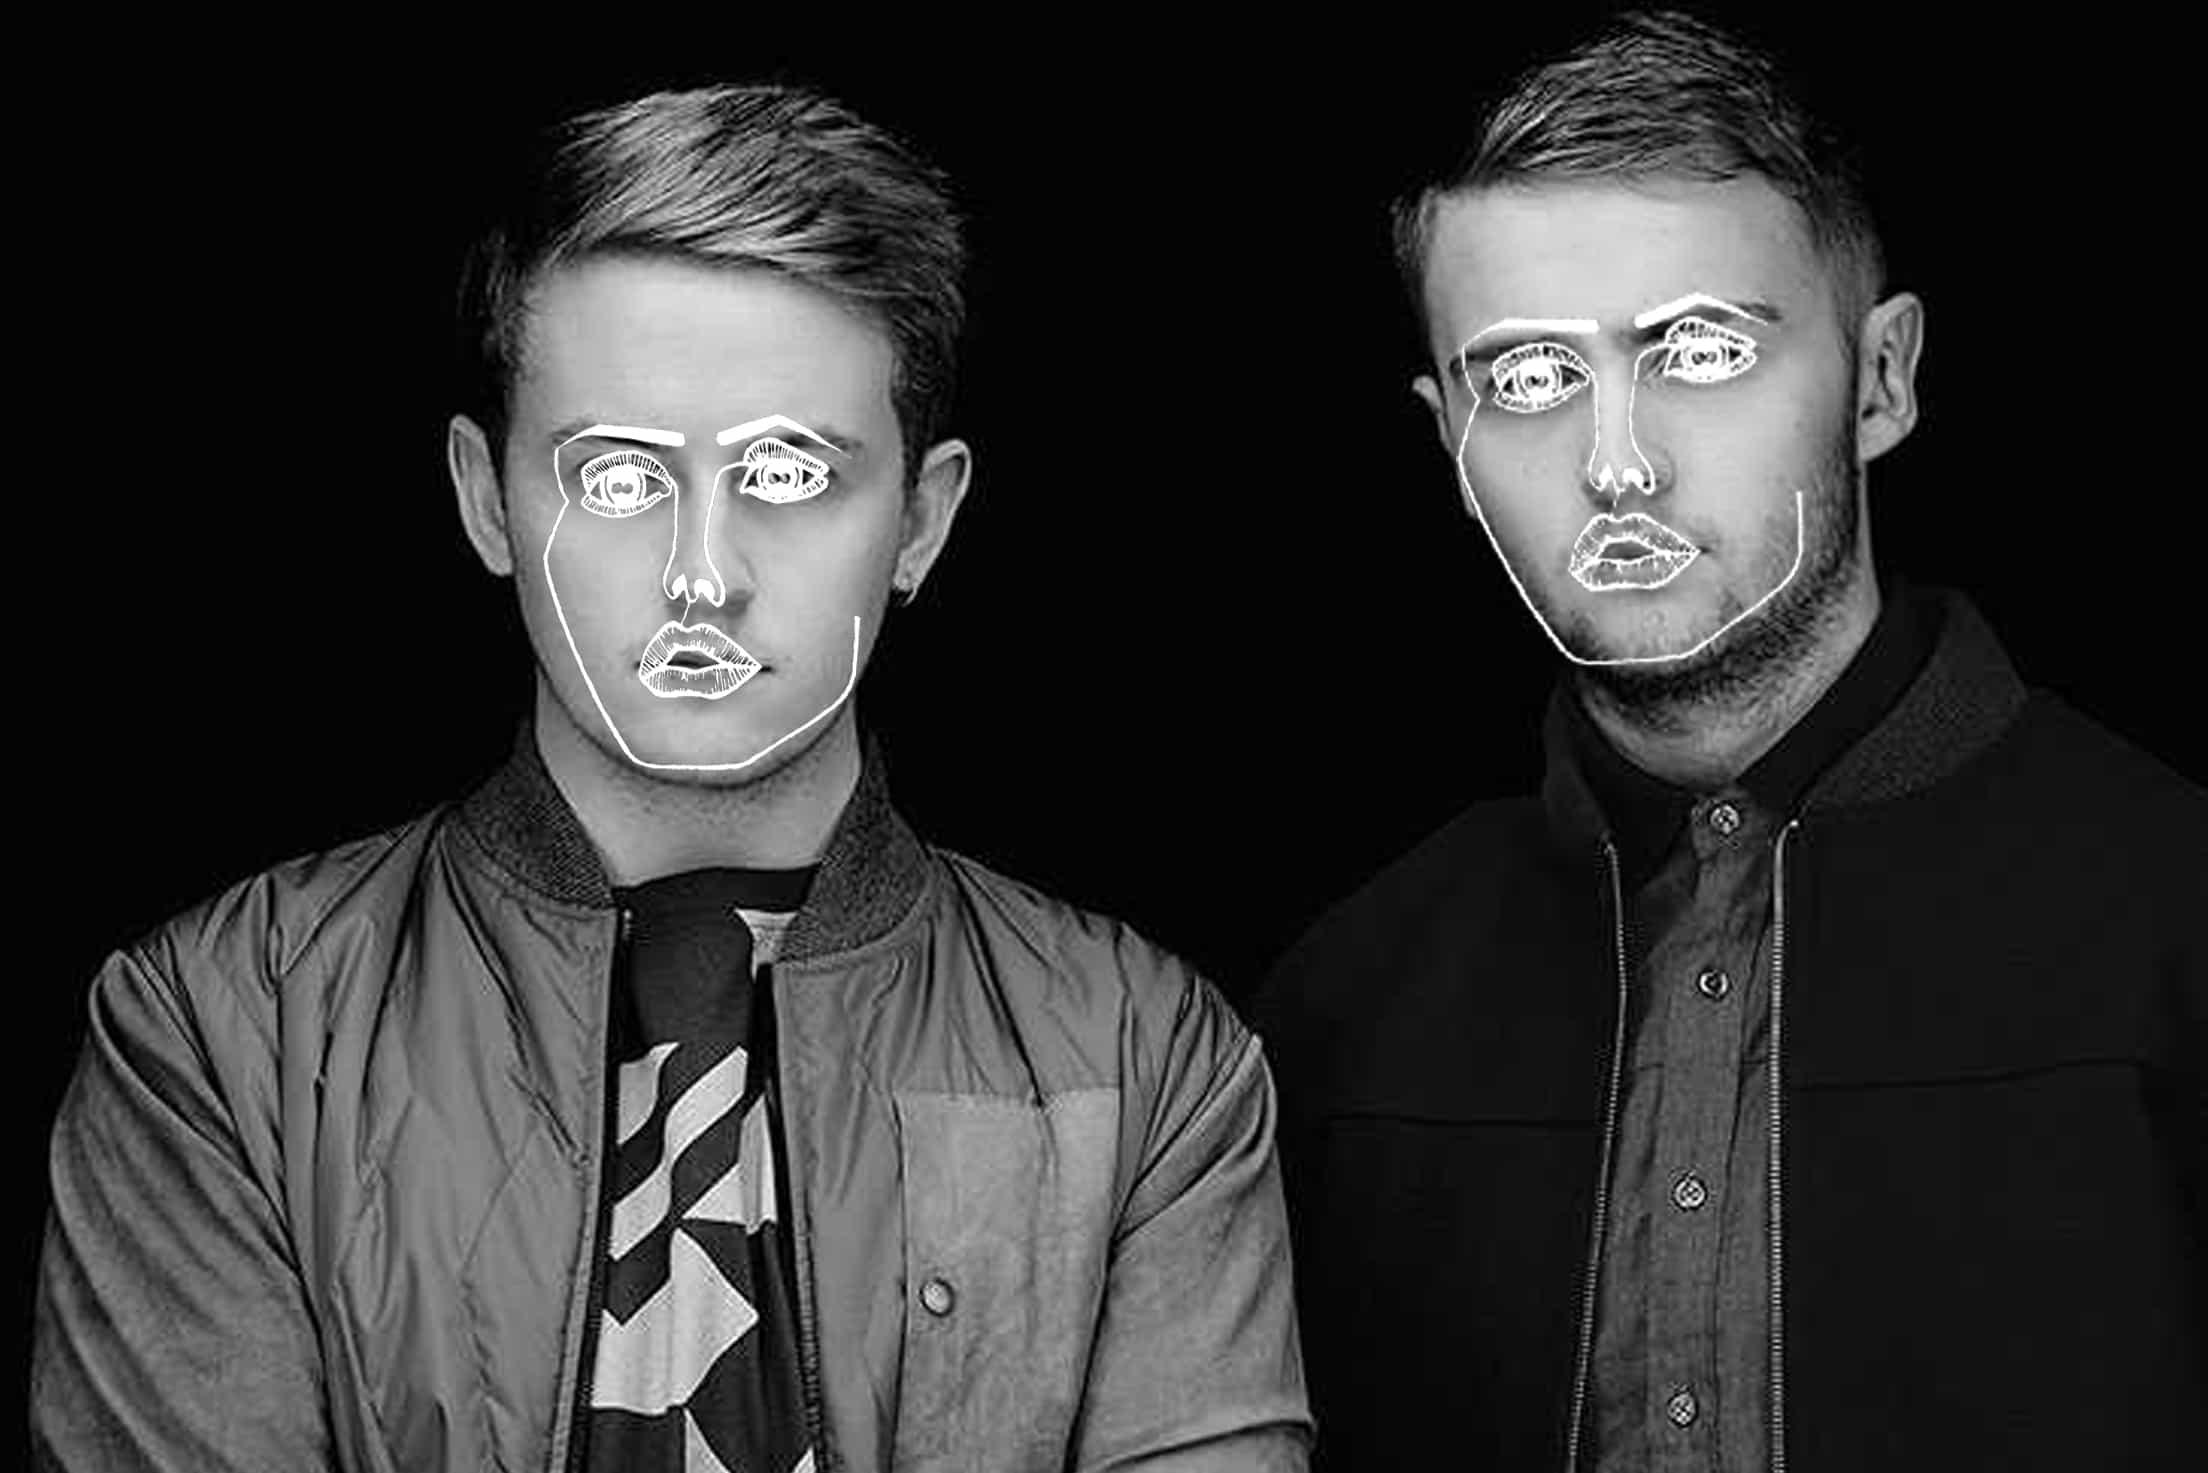 DISCLOSURE ANNOUNCE NEW ALBUM, 'ENERGY'